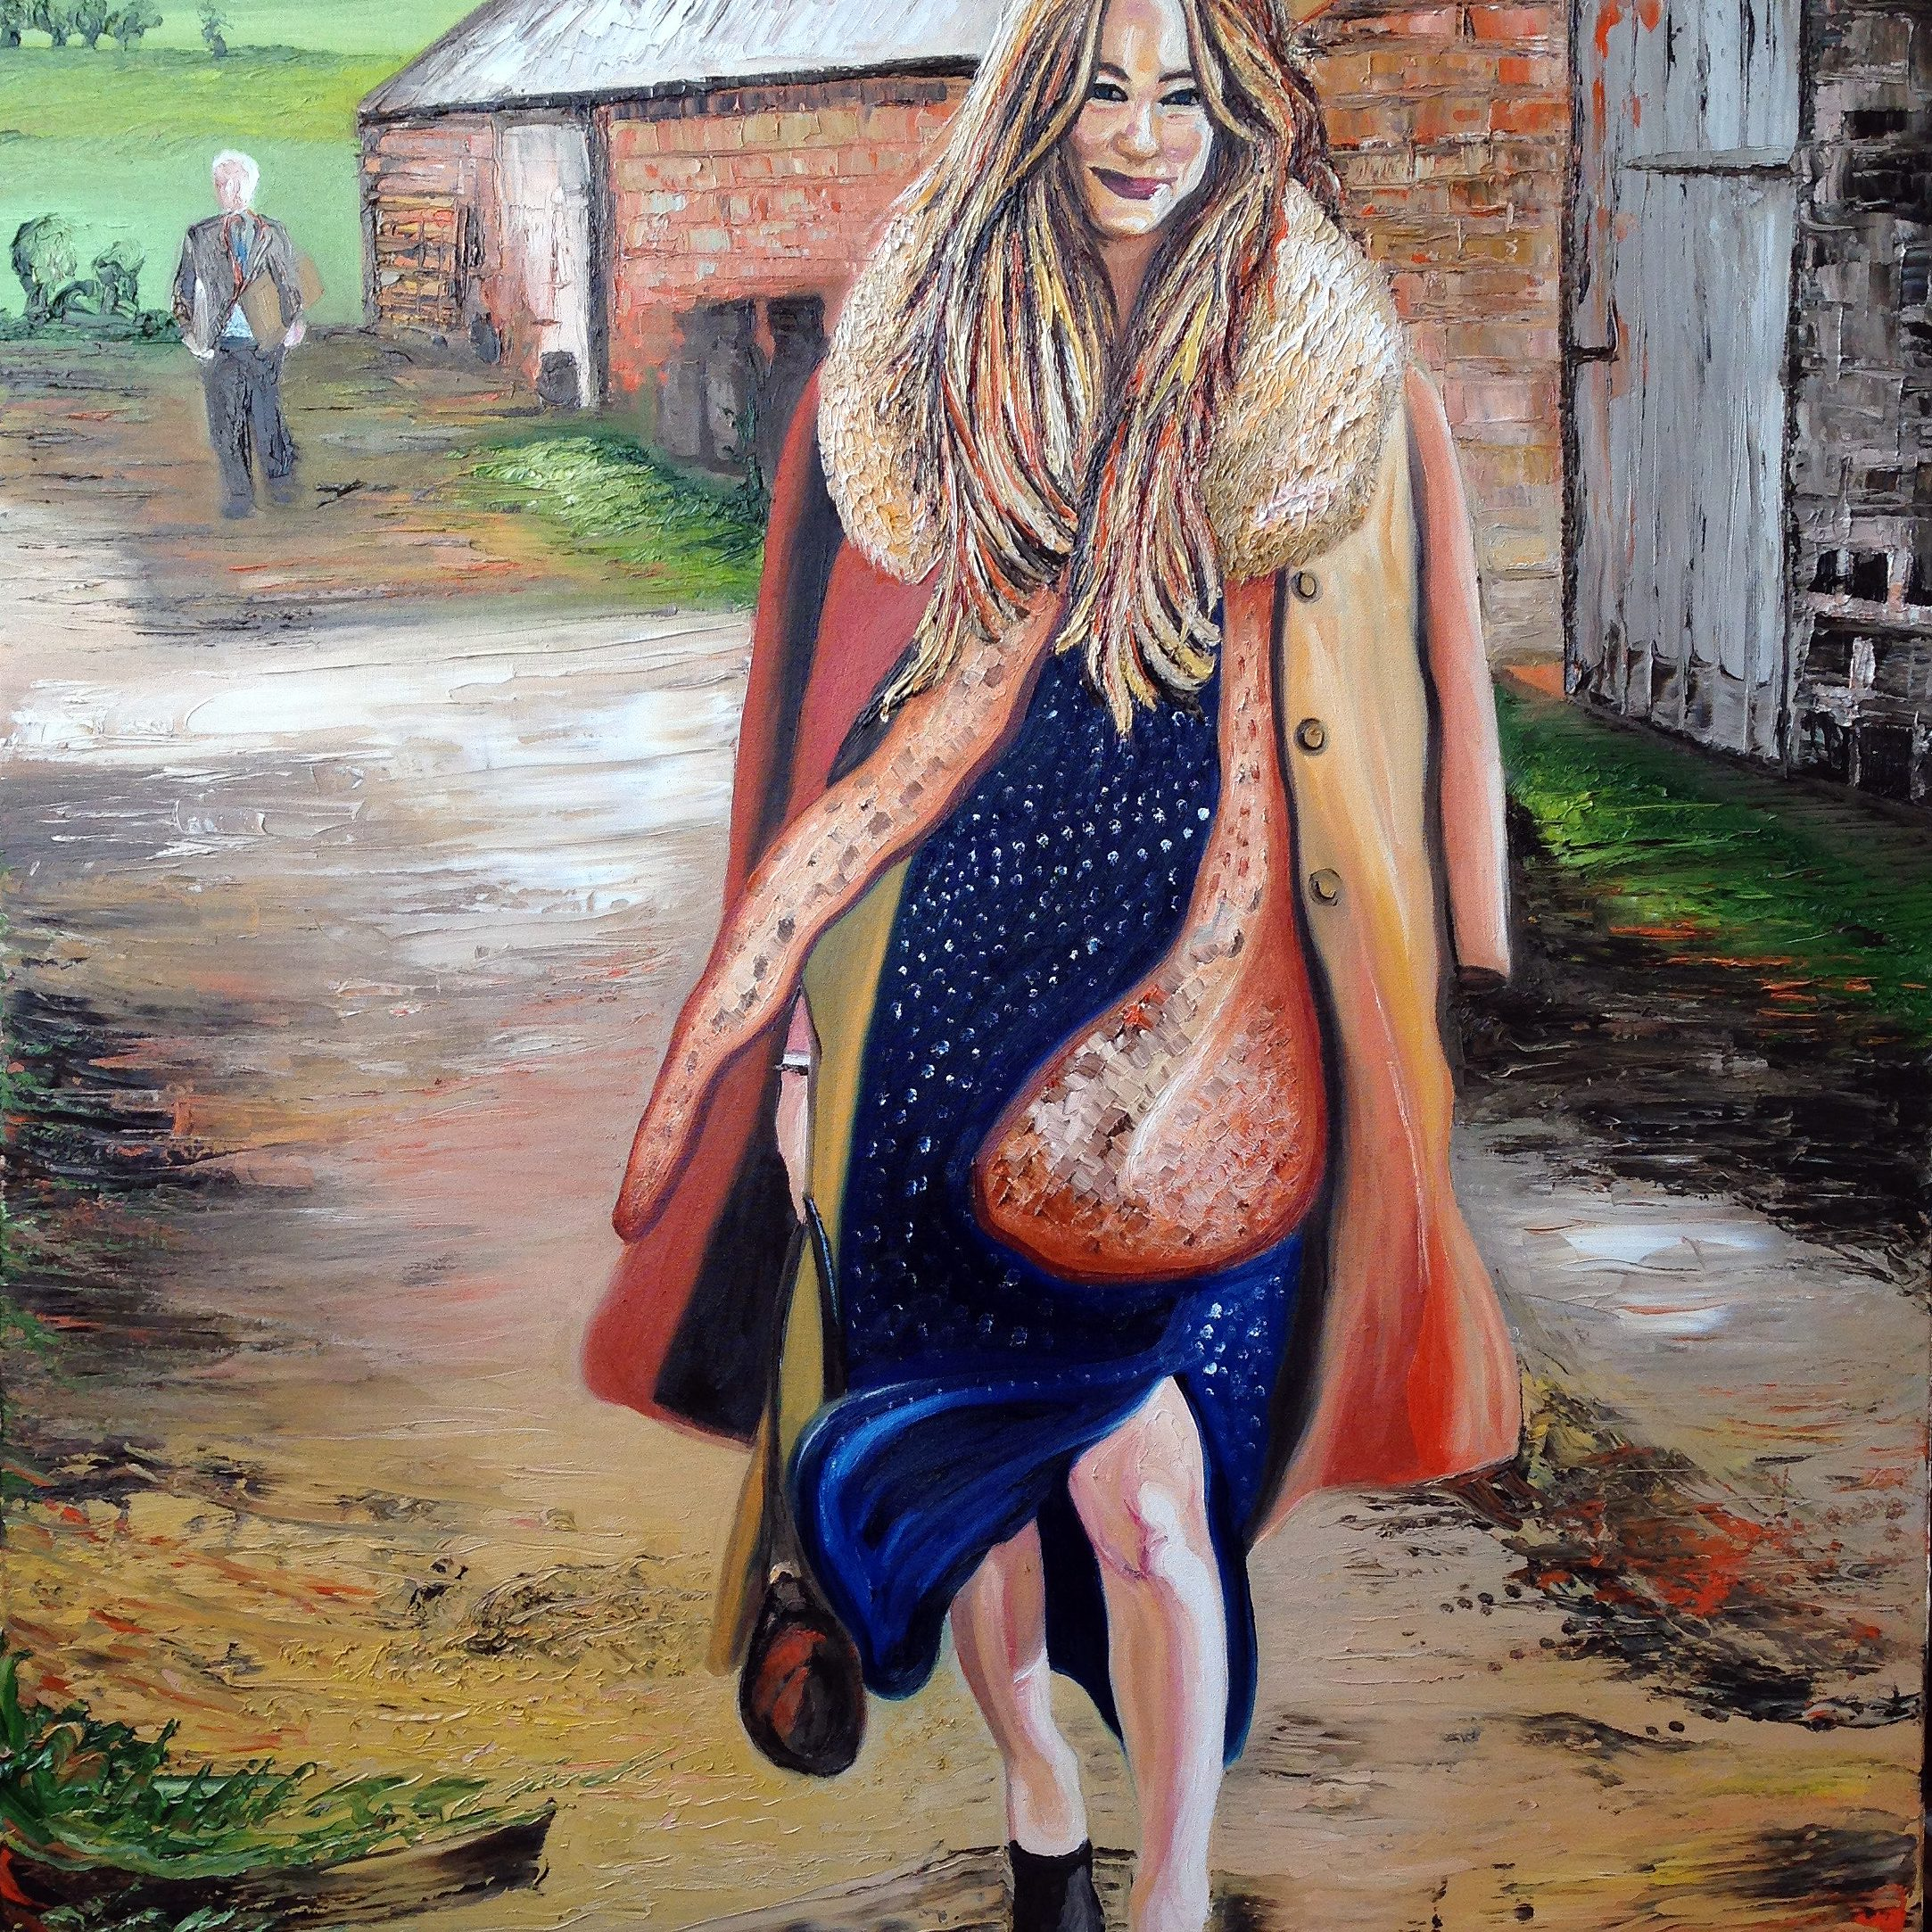 A Day in the Country | Oil on canvas | 92 x 122 cm